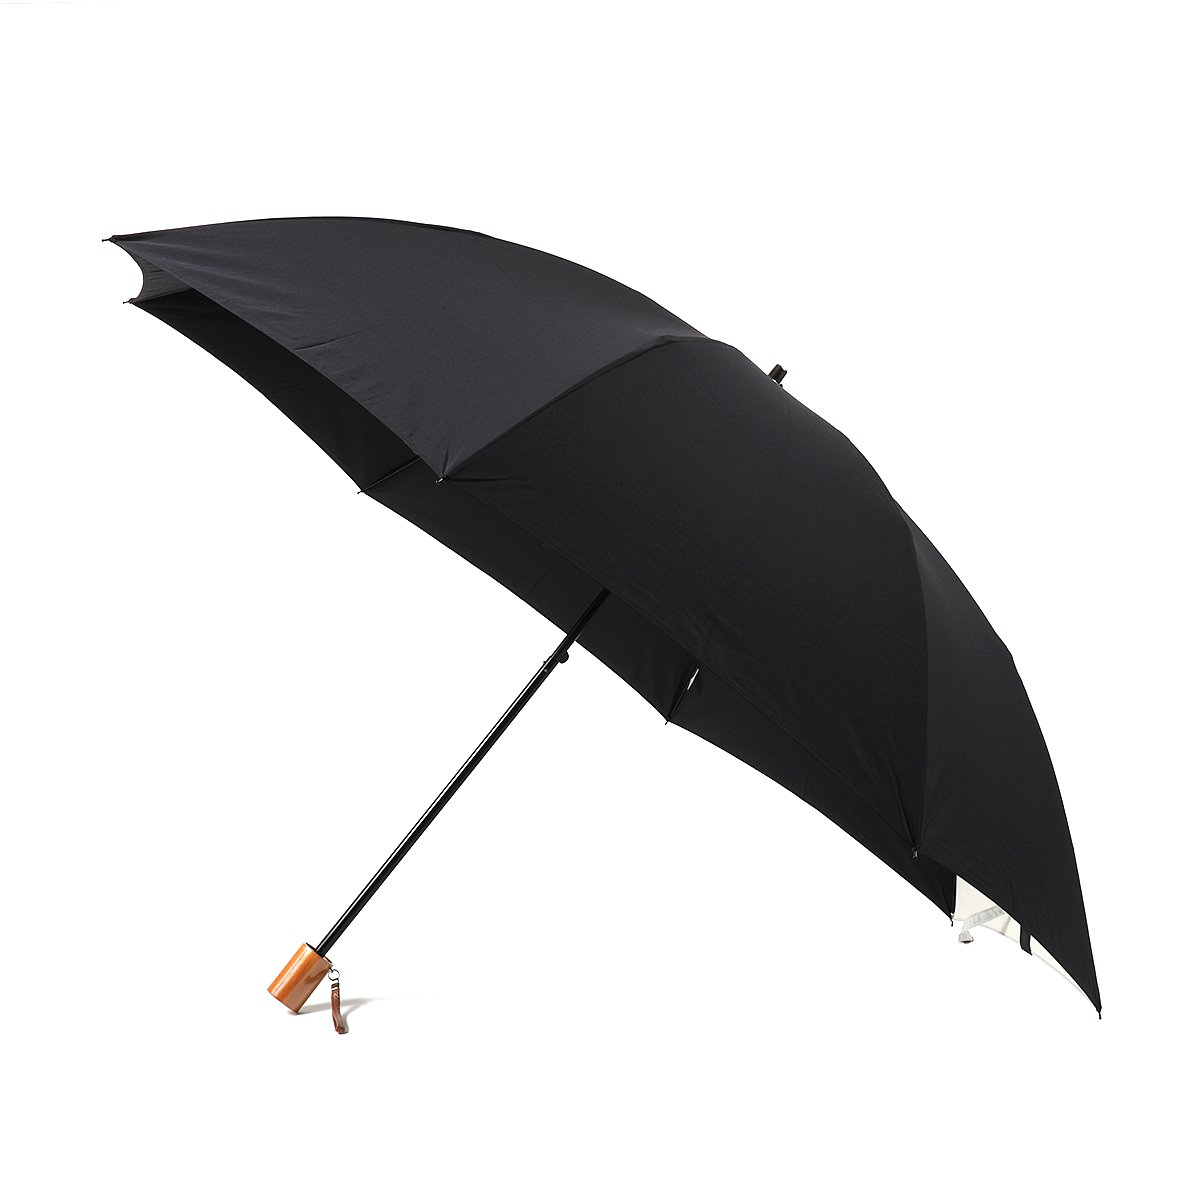 608K CORDURA FOLDING UMBRELLA 詳細画像3